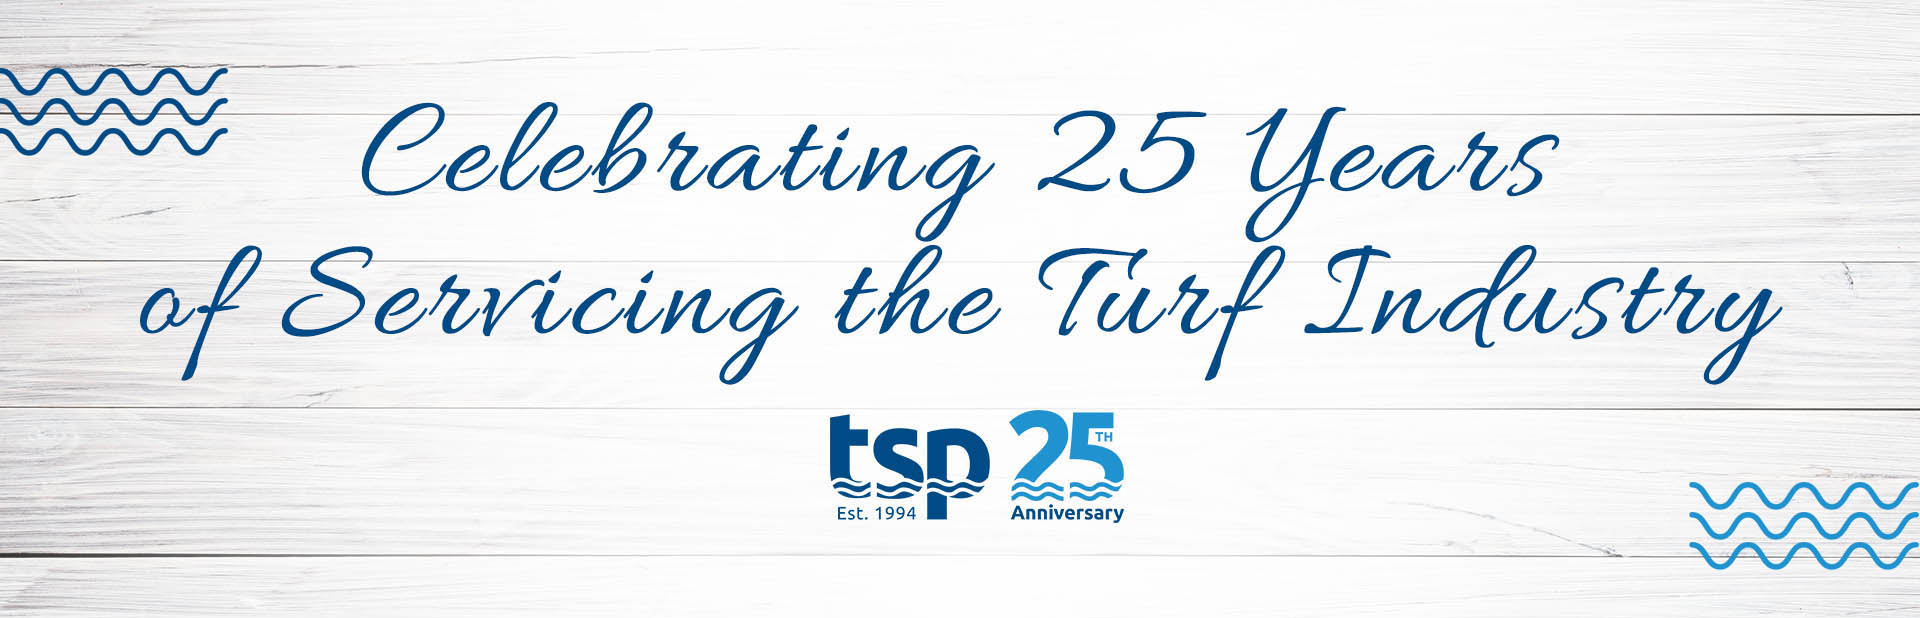 TSP: Celebrating 25 Years of Servicing the Turf Industry